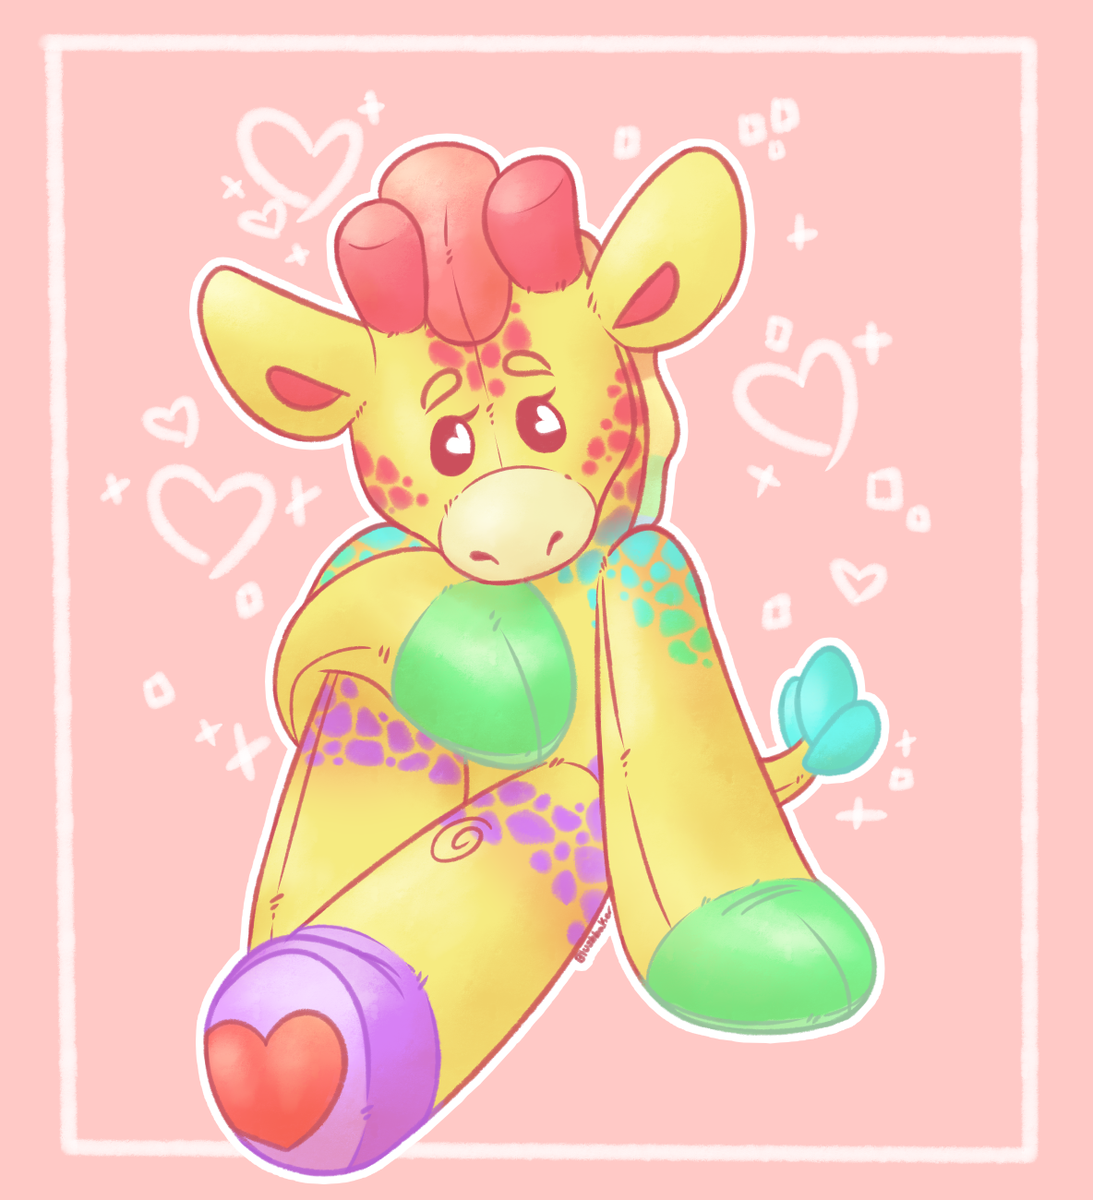 #SmallArtistClub Hey, My name is Skylar and I'm a Nonbinary furry artist! I draw mostly my OC's but I also love to draw Mlp, Lilo and Stitch and sometimes Animal Crossing! <br>http://pic.twitter.com/tVwOzP2Z79